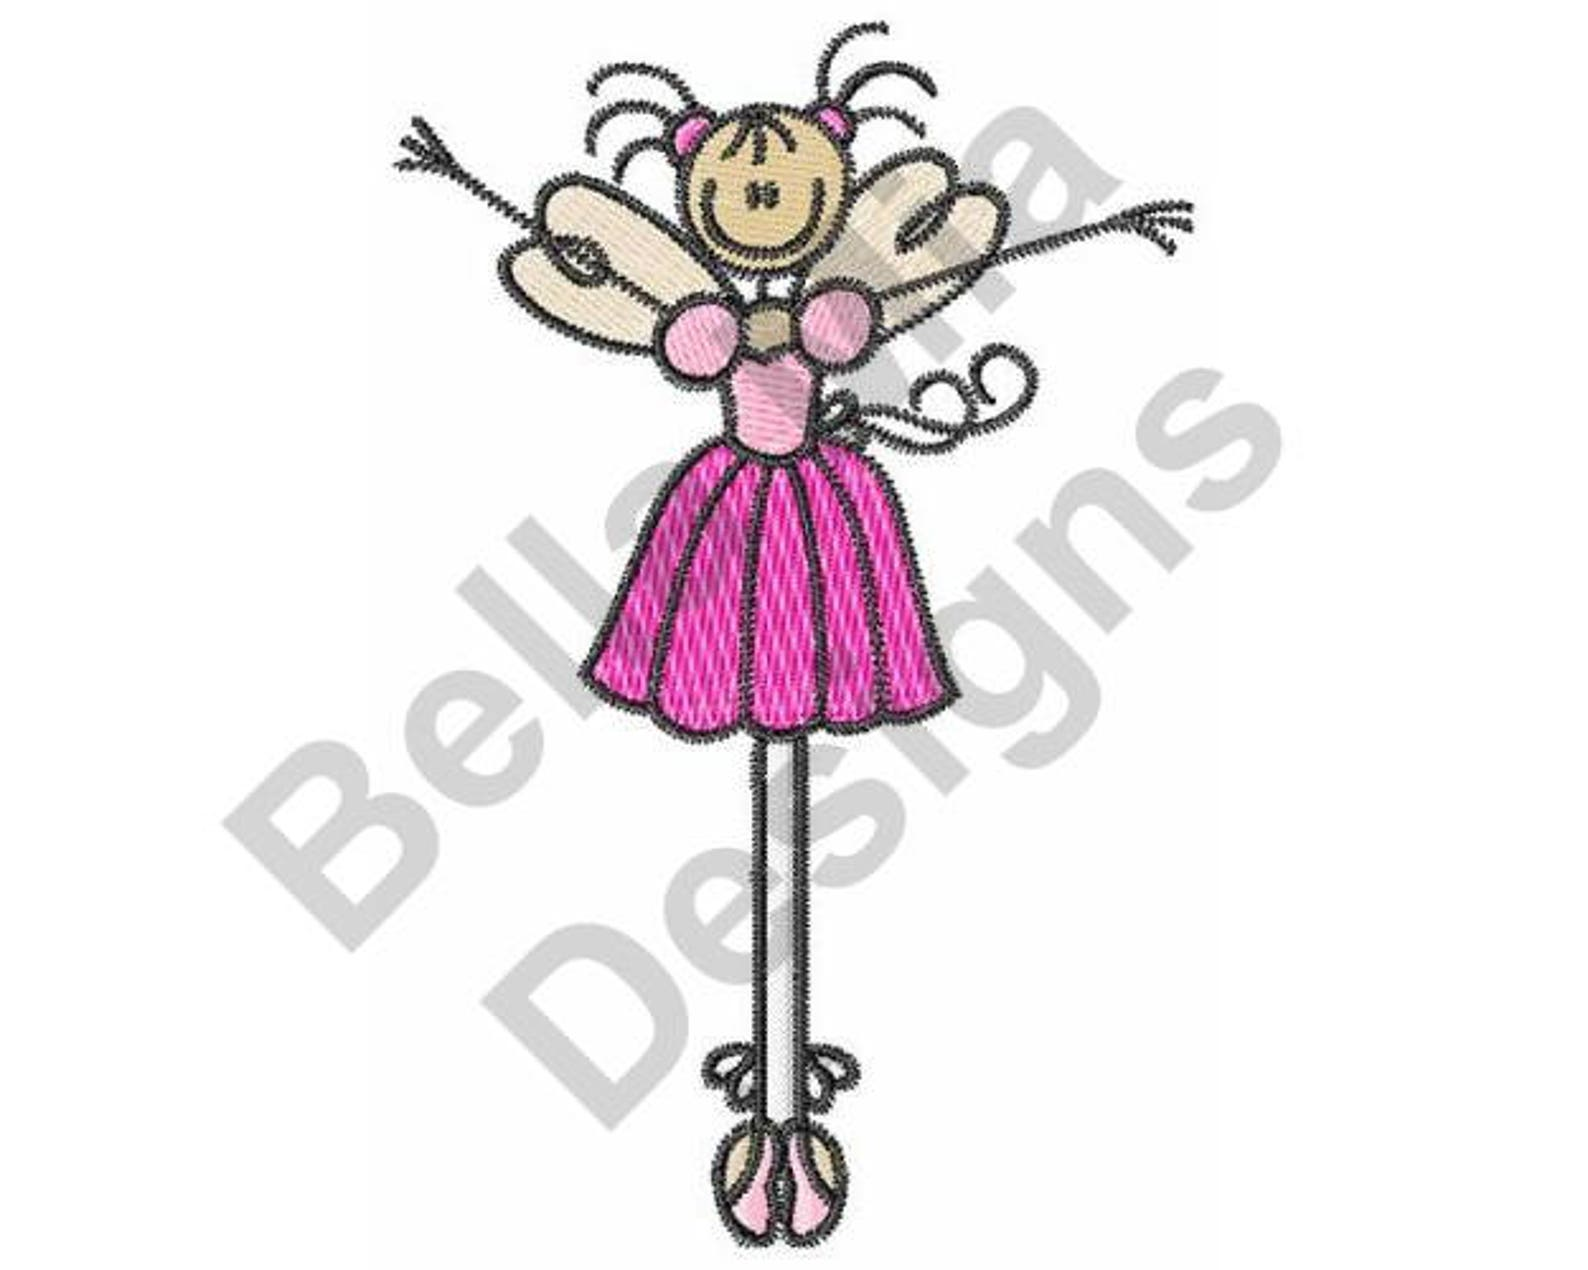 ballet fairy - machine embroidery design, embroidery patterns, embroidery files, instant download